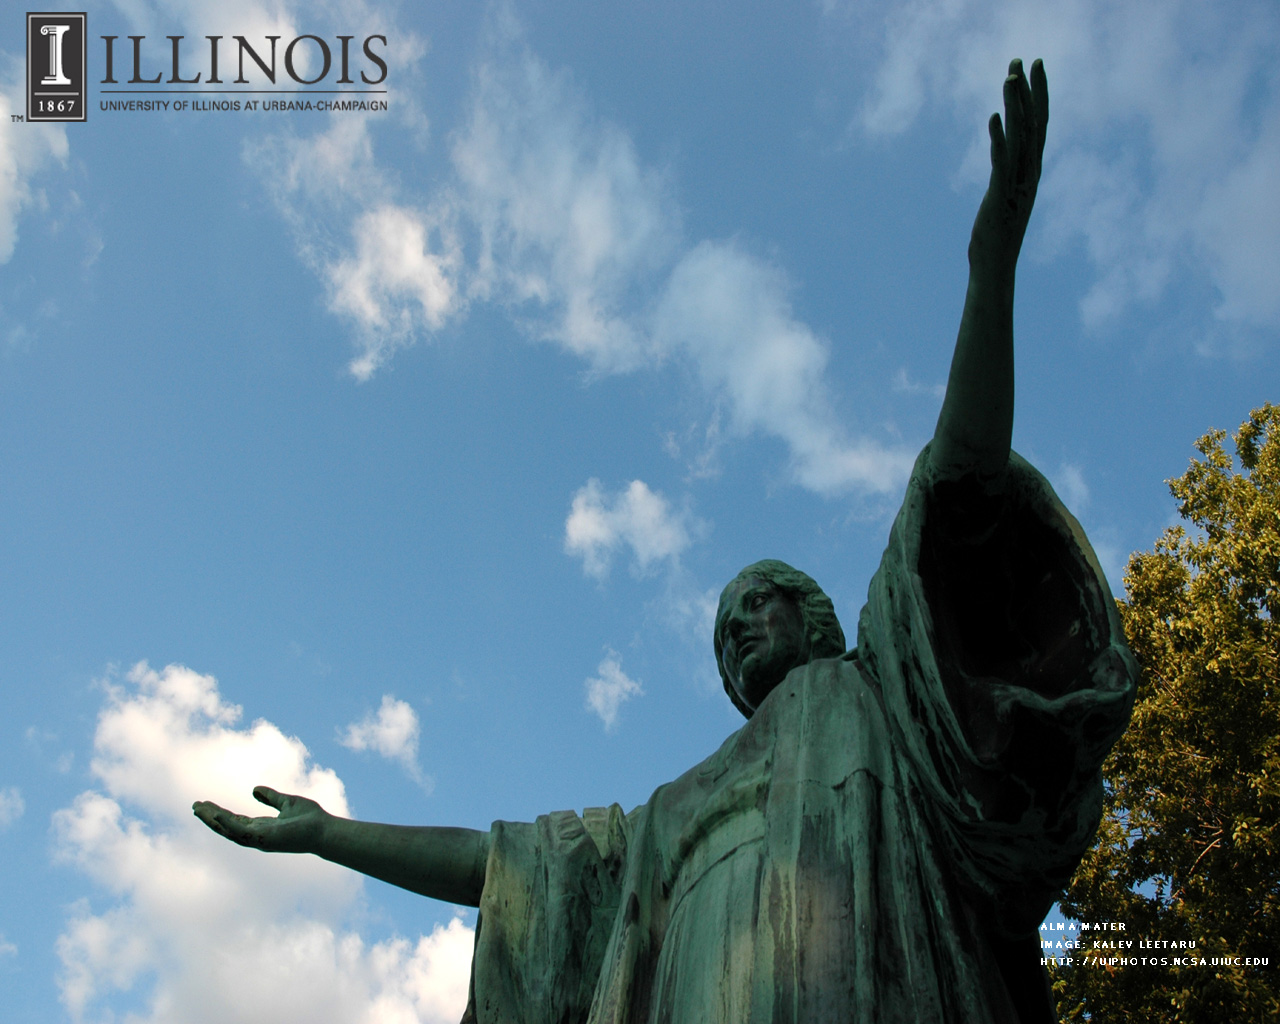 47] University of Illinois Desktop Wallpaper on WallpaperSafari 1280x1024